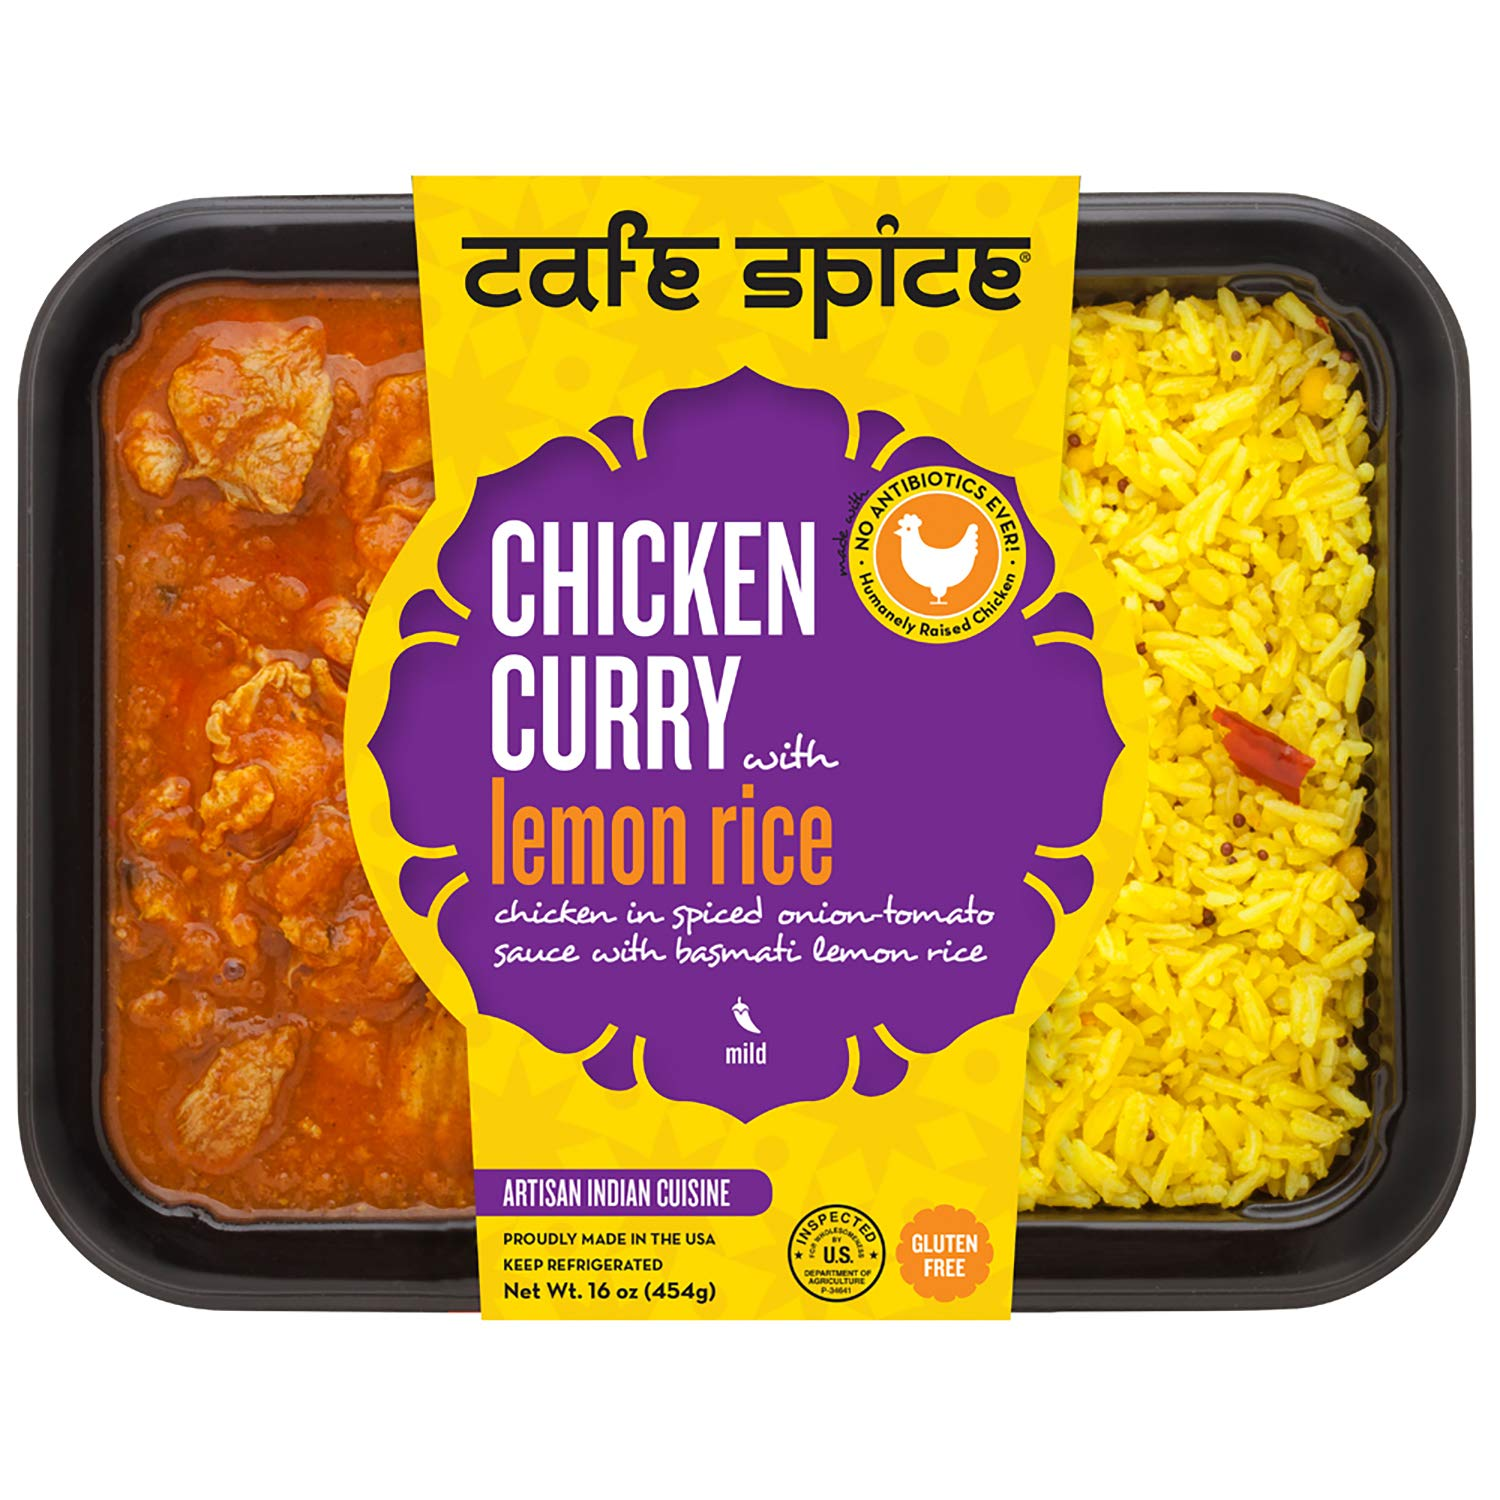 Café Spice Chicken Curry with Lemon Rice, Indian Meal, 16 oz